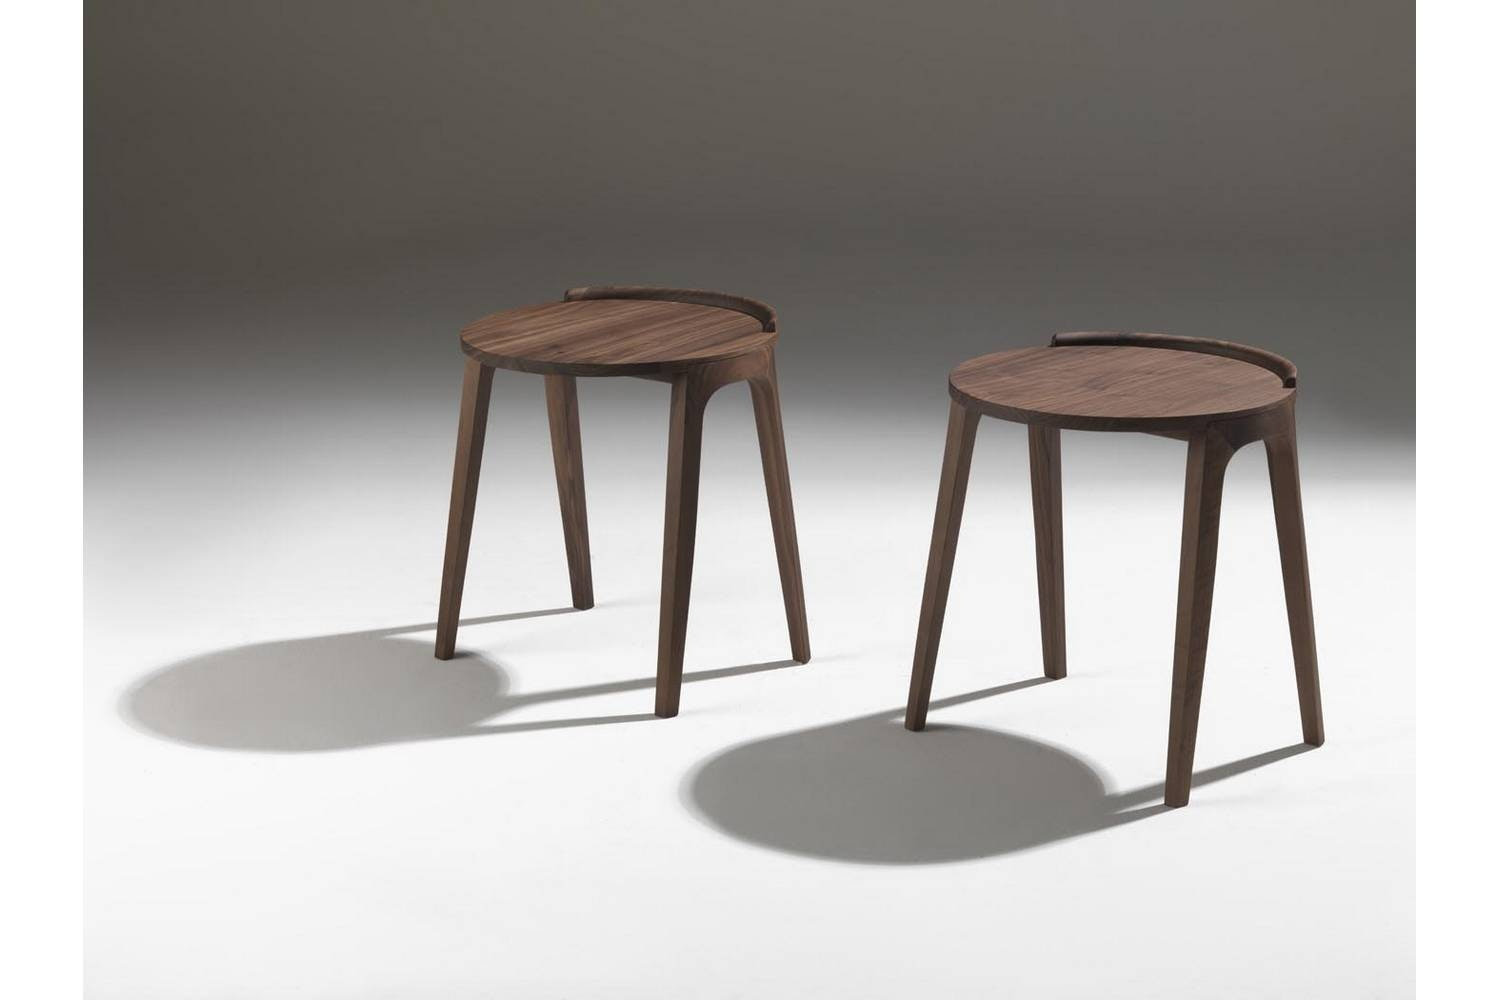 Deck Side Table by P. Salvade for Porada